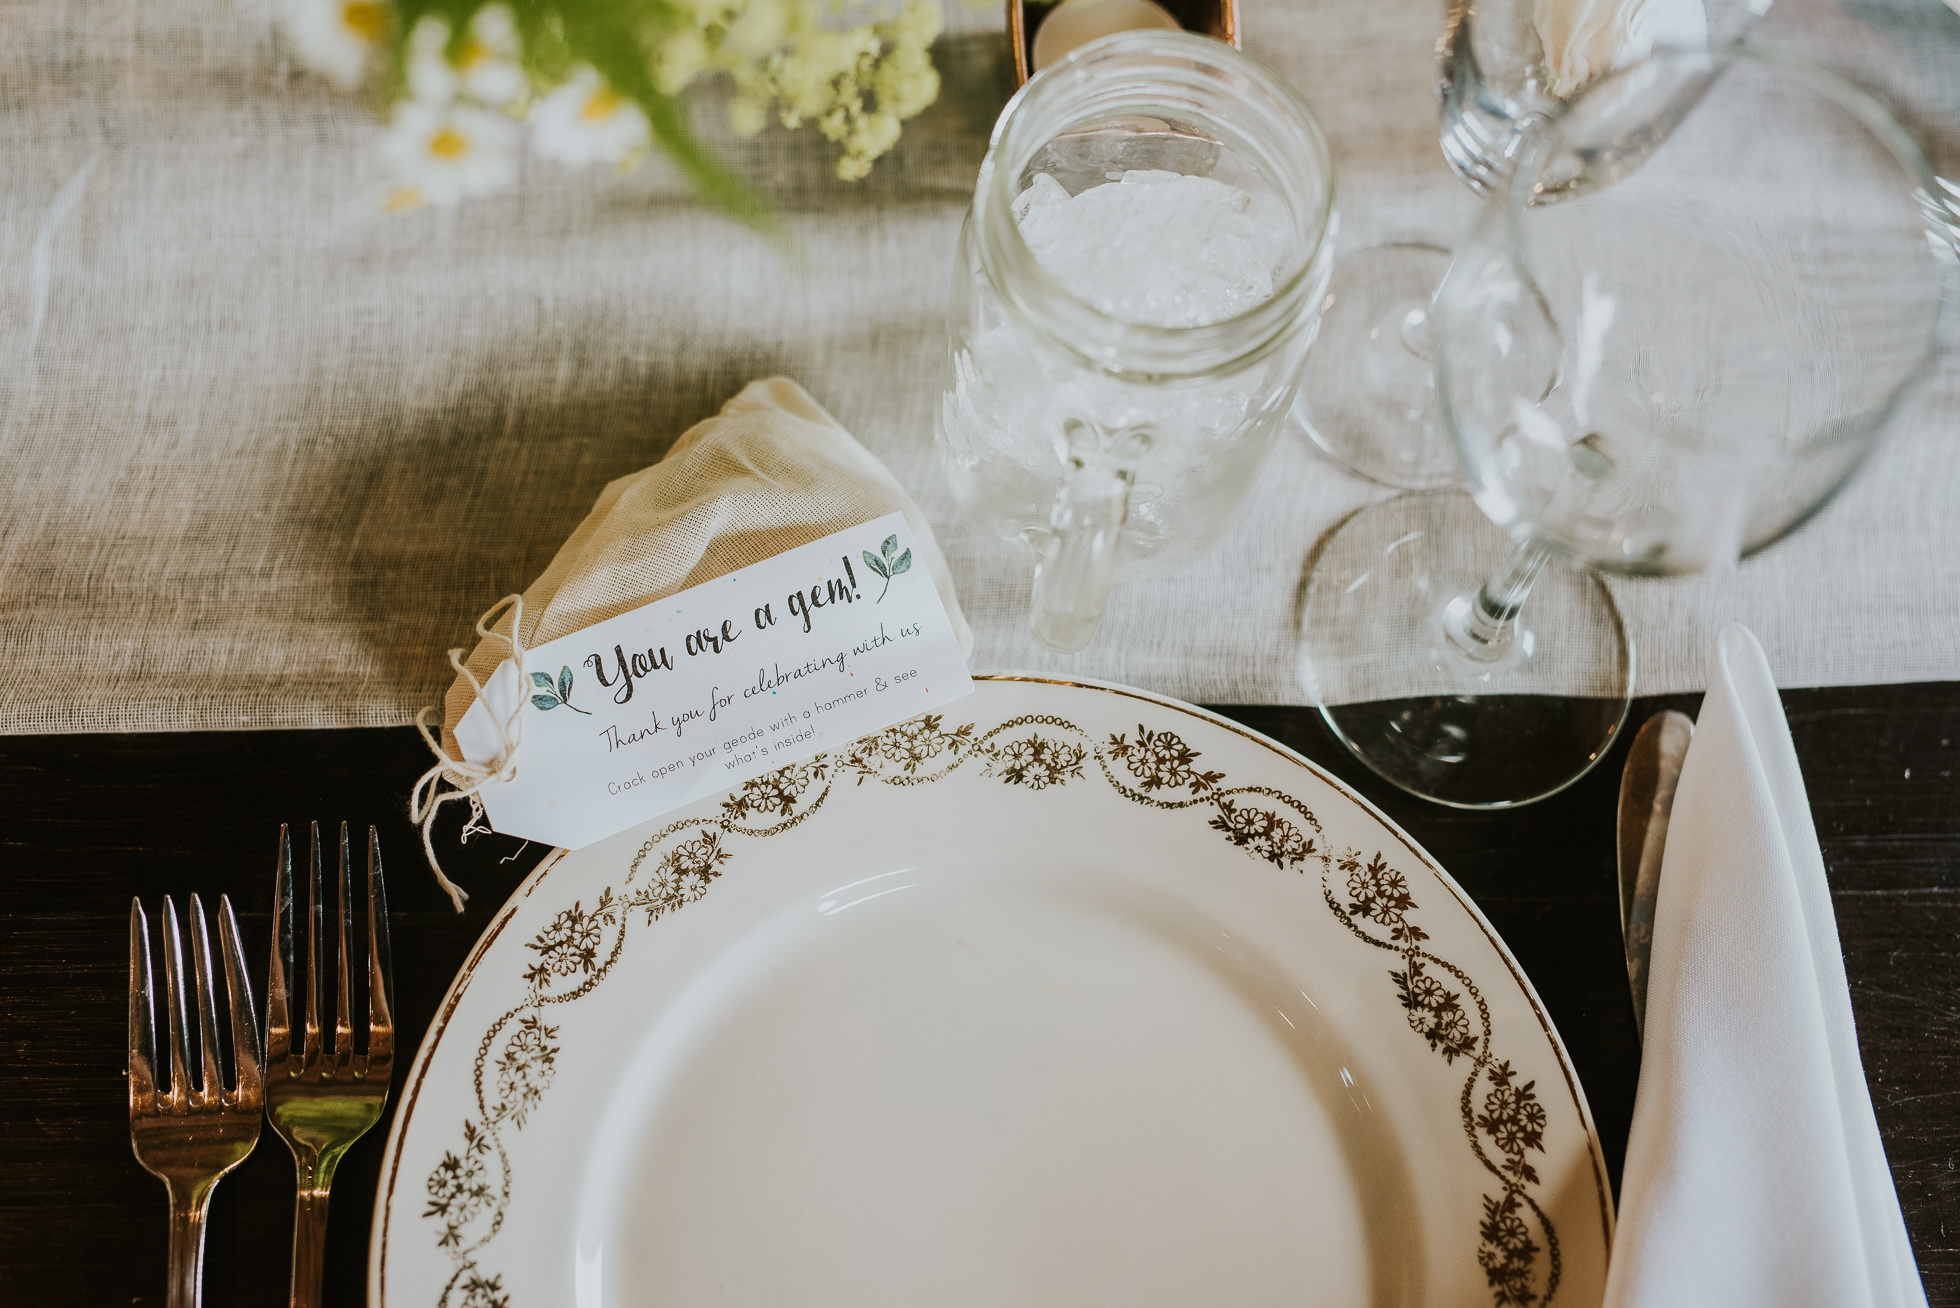 vintage plates for wedding reception photographed by Traverse the Tides